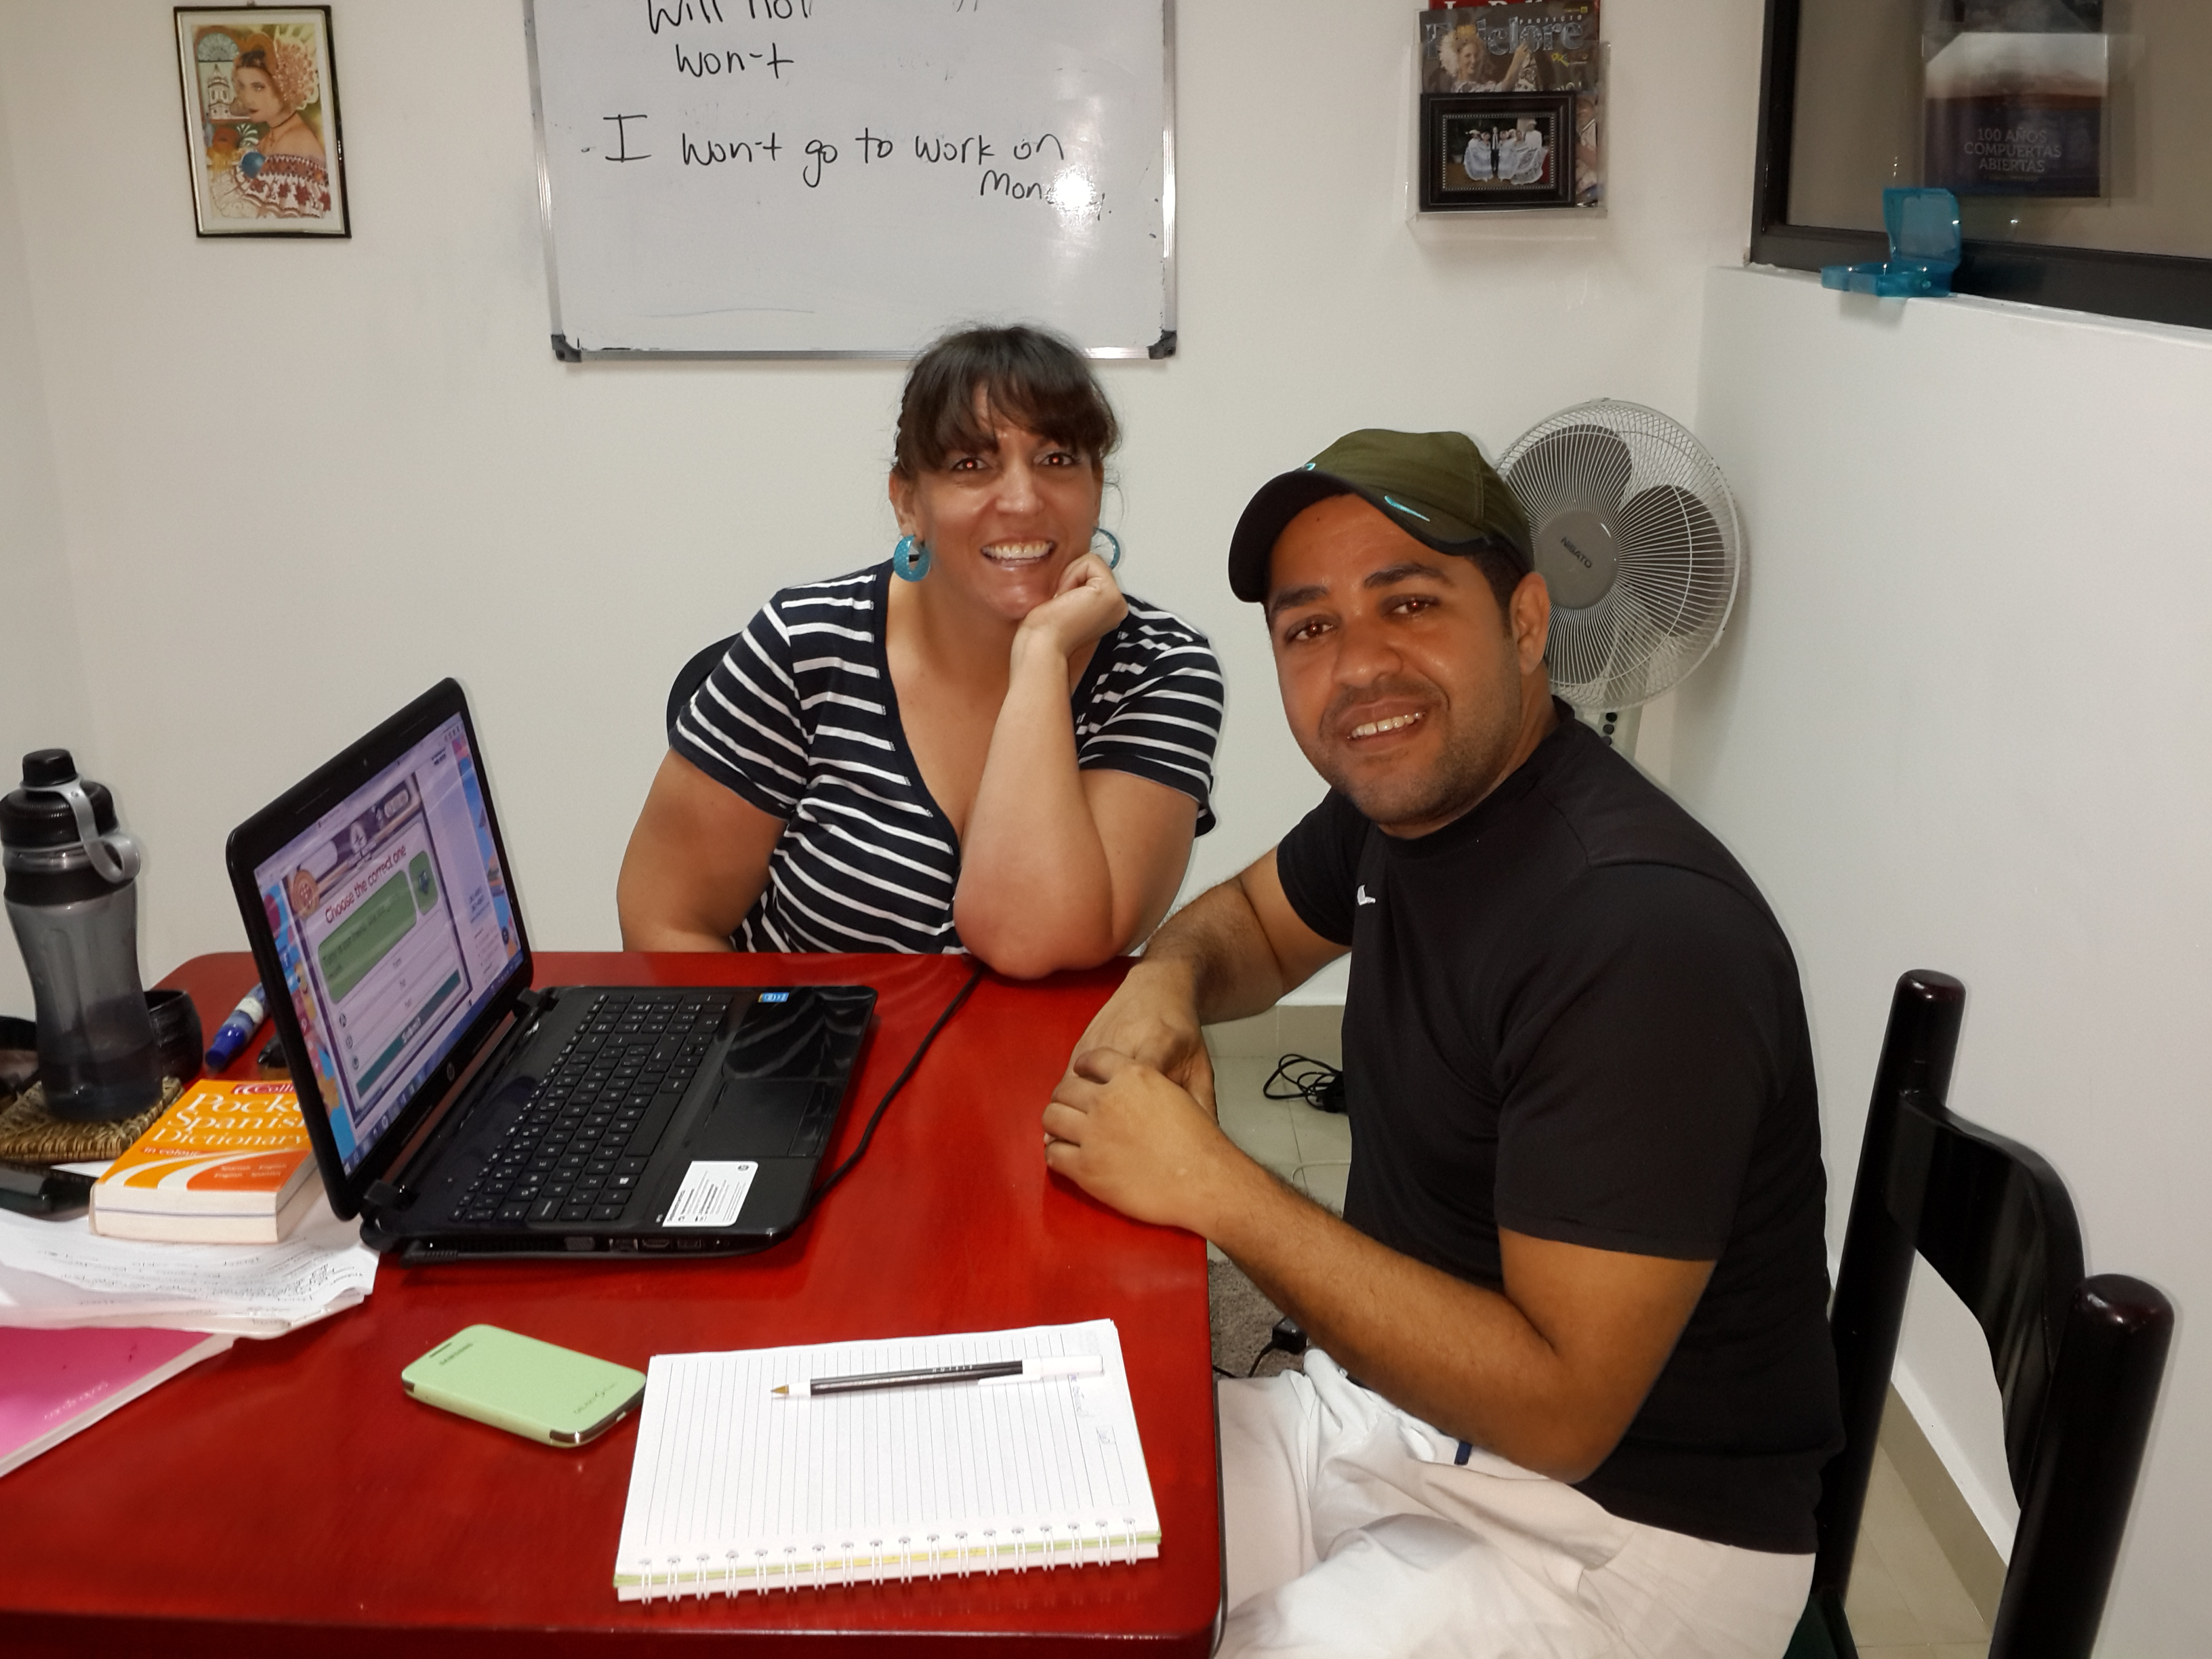 SpanishPanama now teaches English classes in Panama private or personalized group English courses are available